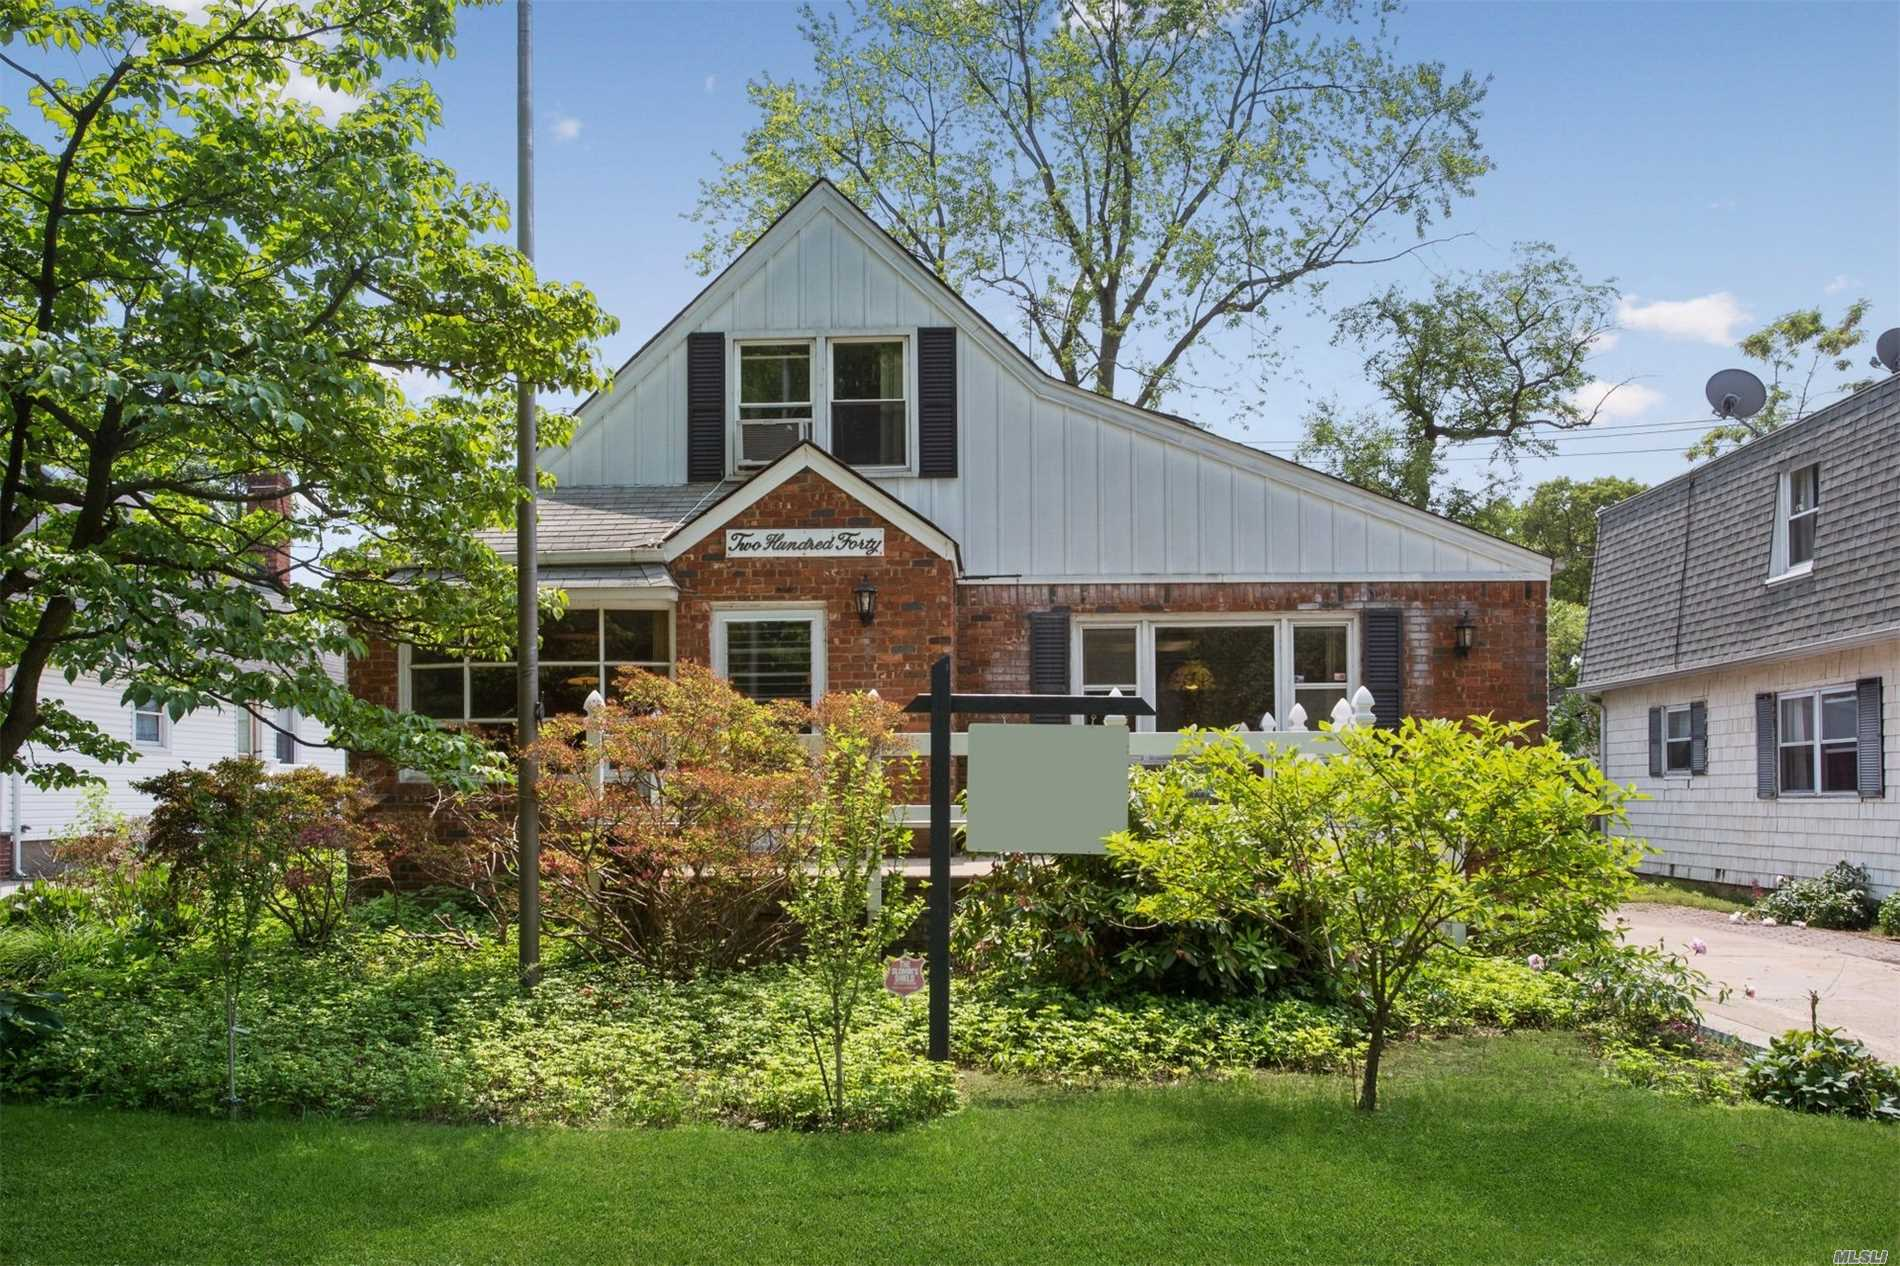 Spacious Cape In The Village Of Floral Park. If You Want The Feeling Like Your Living In The Country, Sit on the Front Porch, Relax and Enjoy This Lovely Home With Views Of Beautiful Centennial Gardens. Home Features: Living Rm; Dining Rm;Eat-in-Kitchen; First Floor Master Bedroom;Full Bathroom; Second Bedroom or Den; Second Floor Has Two Additional Bedrooms; Full Basement; 1 1/2 Car Garage & Yard. FPBS #22.